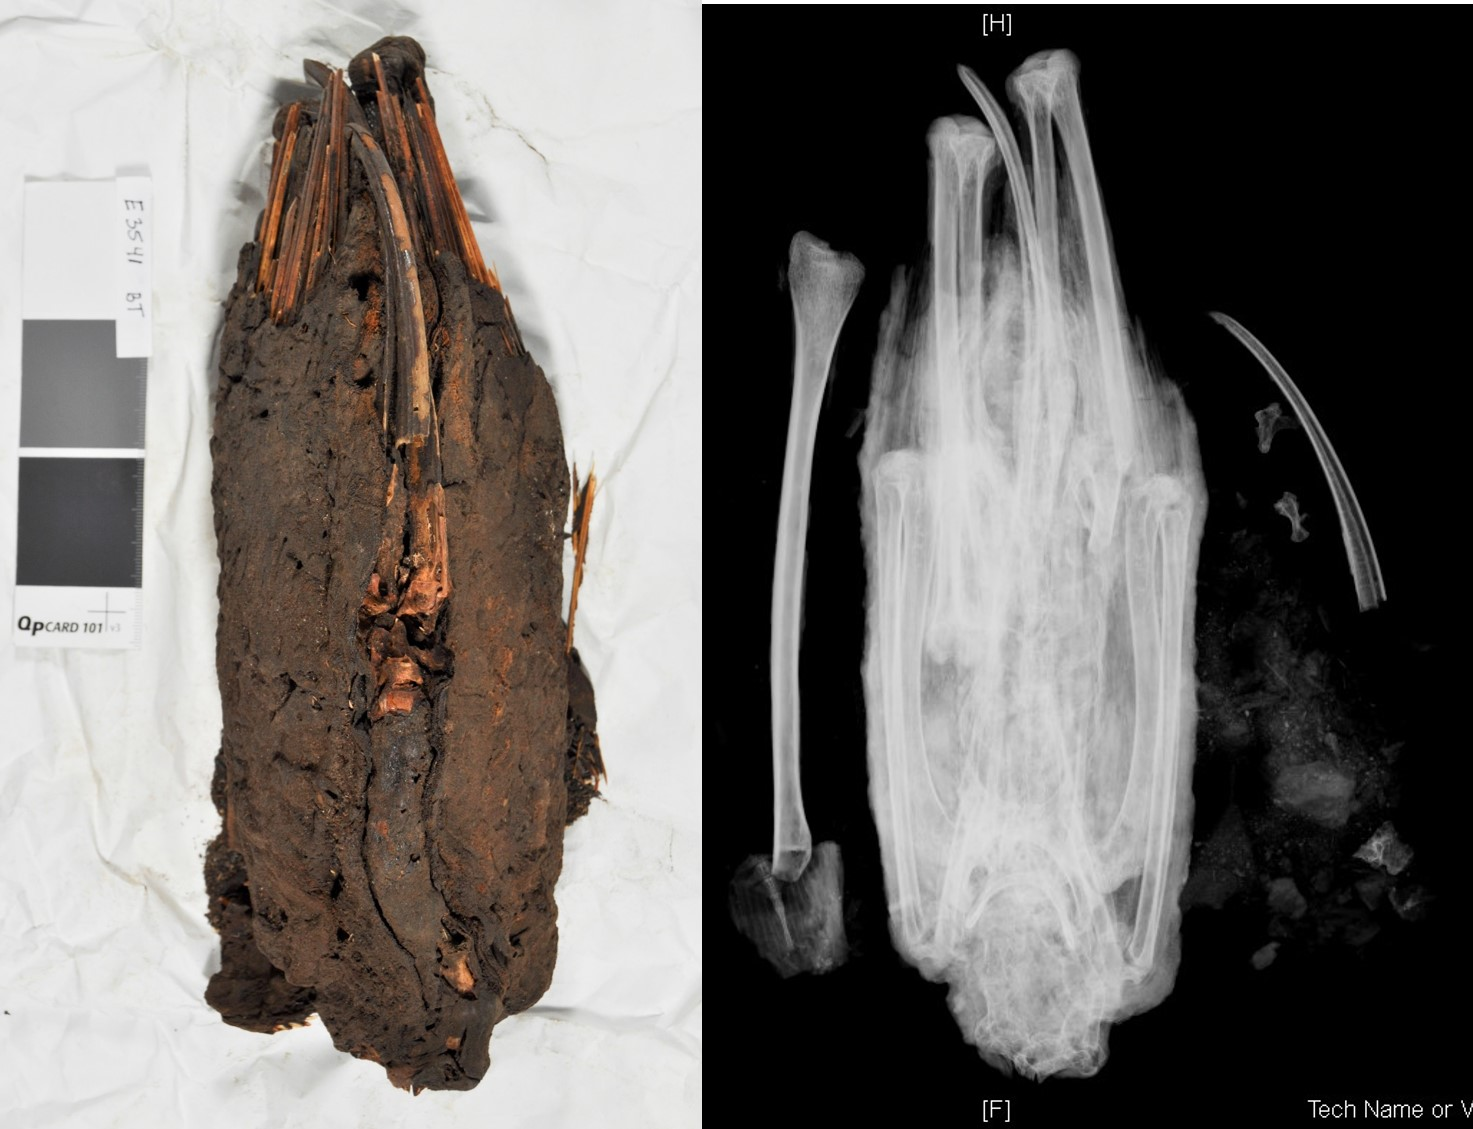 Mummy (left) and radiograph (right) showing an ibis inside, plus an extra bone and part of the ibis beak.